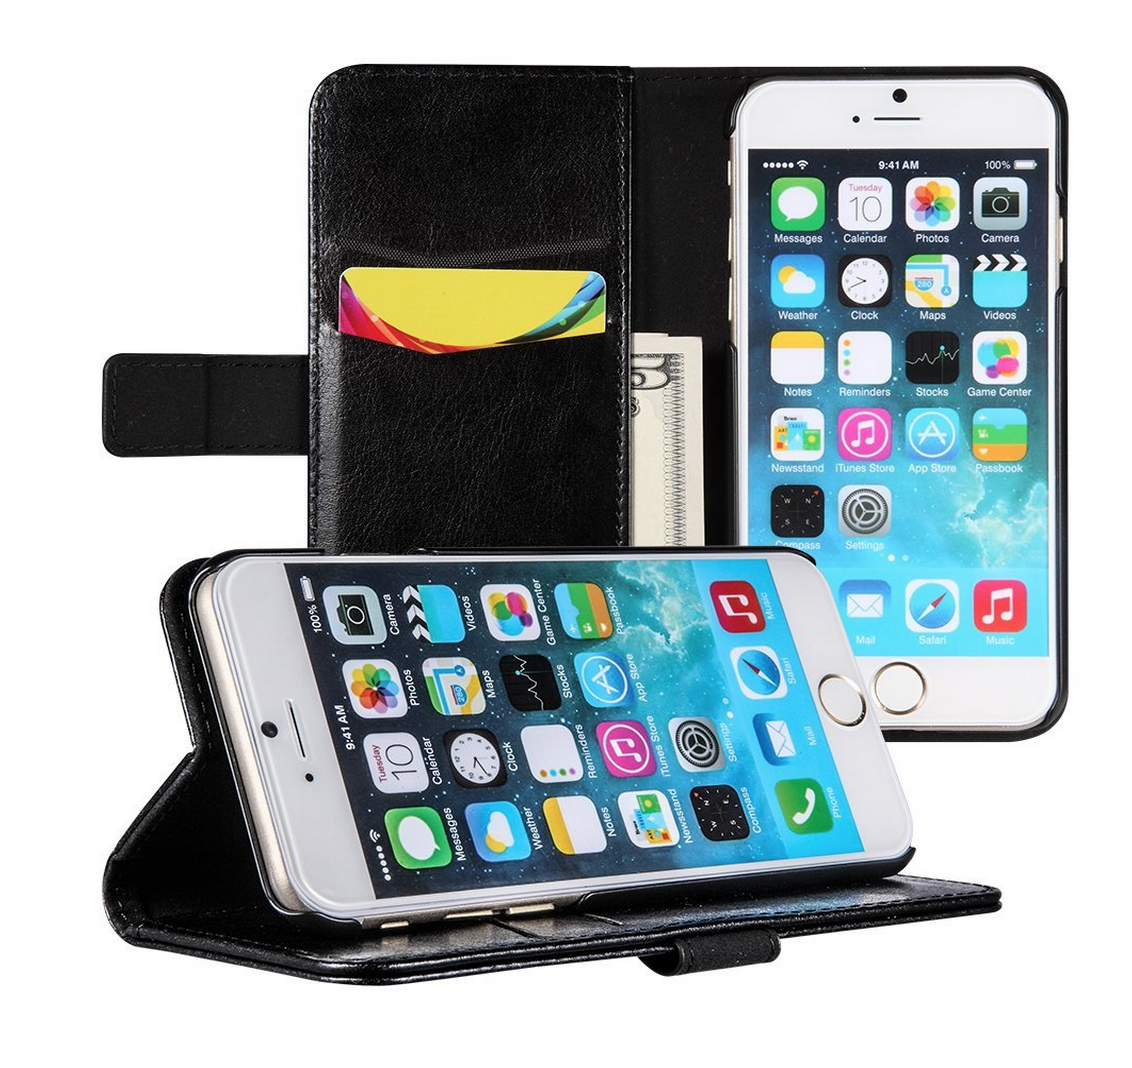 EasyAcc® iPhone 6 Leather Wallet Case Only $7.99 (Reg. $29.99!) + FREE USB Travel Wall Charger!